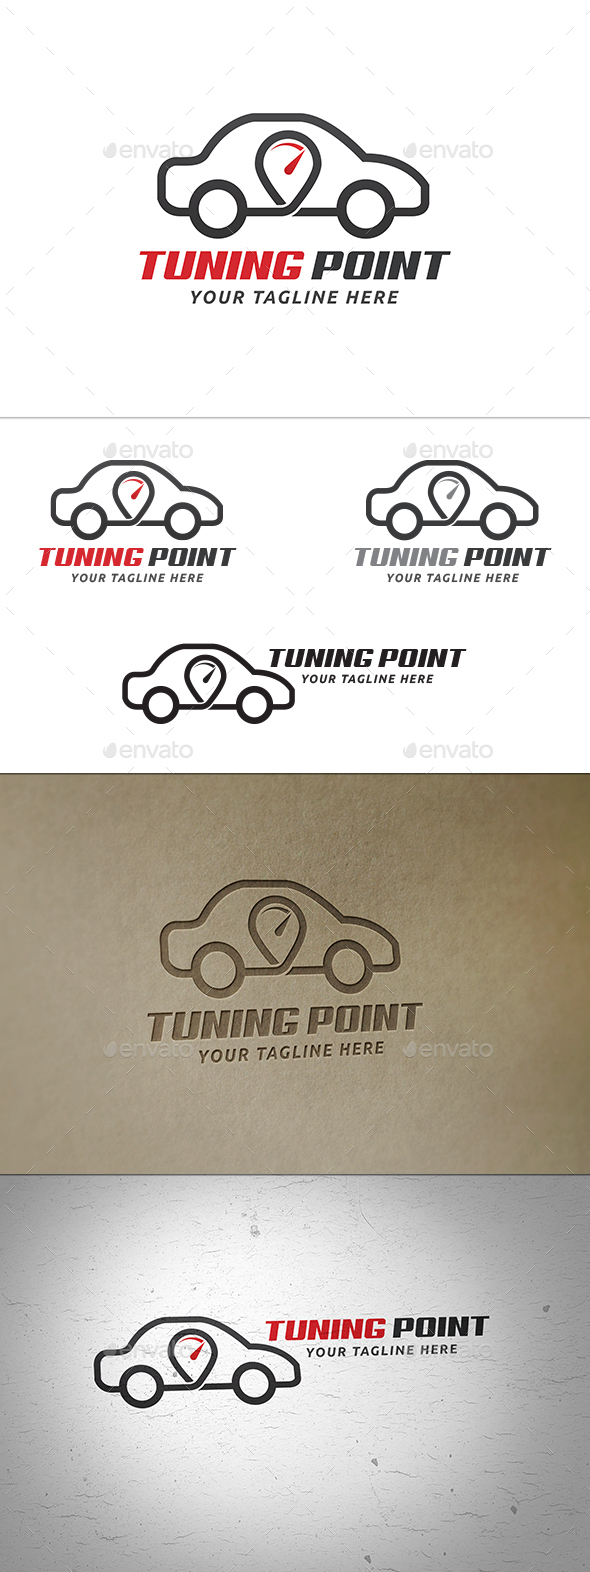 Car Tuning Point Logo - Symbols Logo Templates